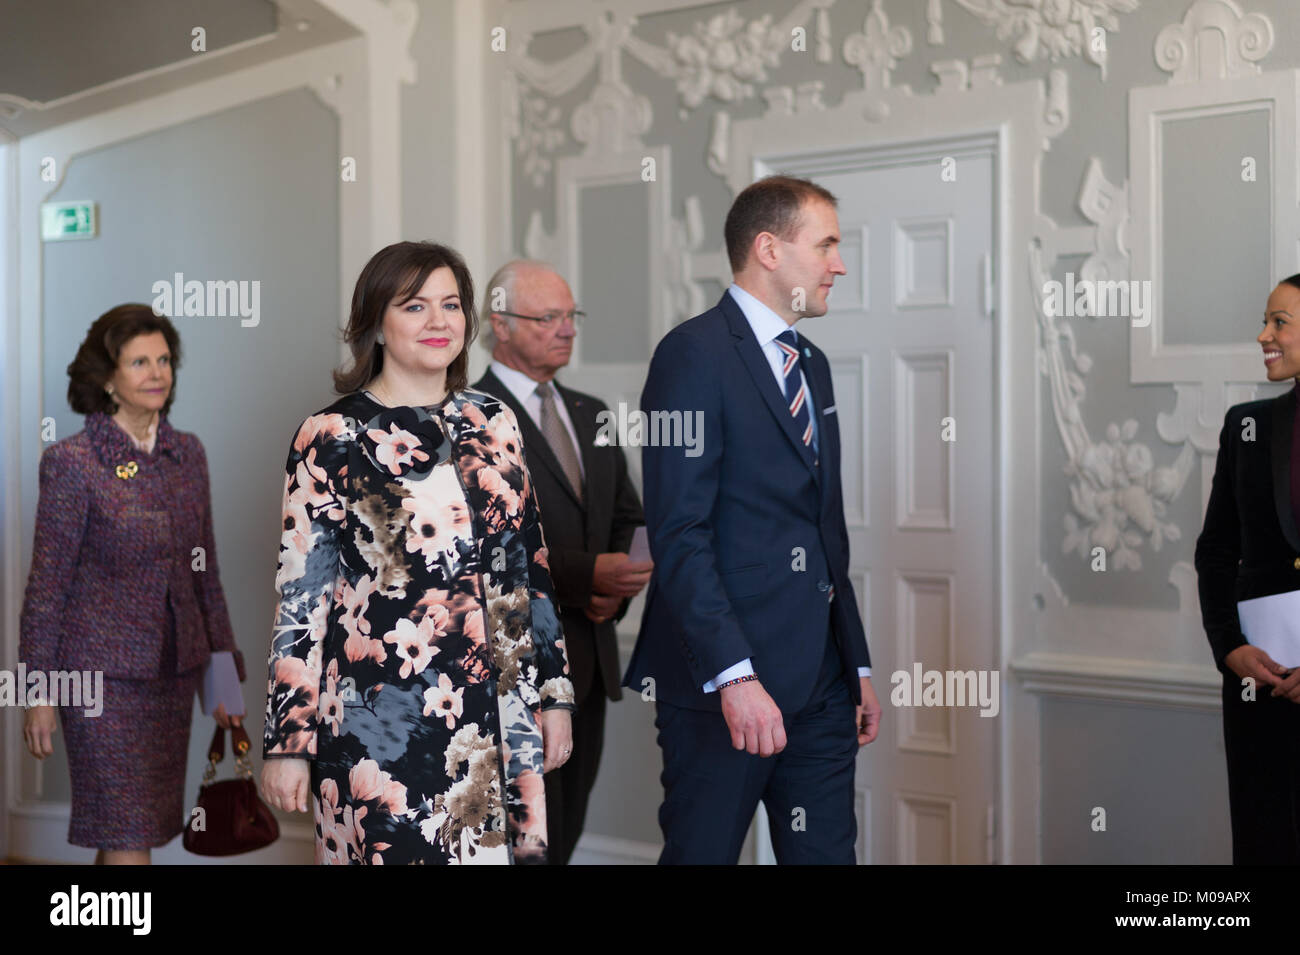 Stockholm, Sweden. 19th Jan, 2018. From 17 to 19 January, Iceland's President Guðni Thorlacius Jóhannesson, visiting Sweden at the invitation of The King. President Jóhannesson visiting Sweden with his wife, Eliza Jean Reid. The royal couple and the presidential couple visiting Uppsala Castle. Credit: Barbro Bergfeldt/Alamy Live News Stock Photo